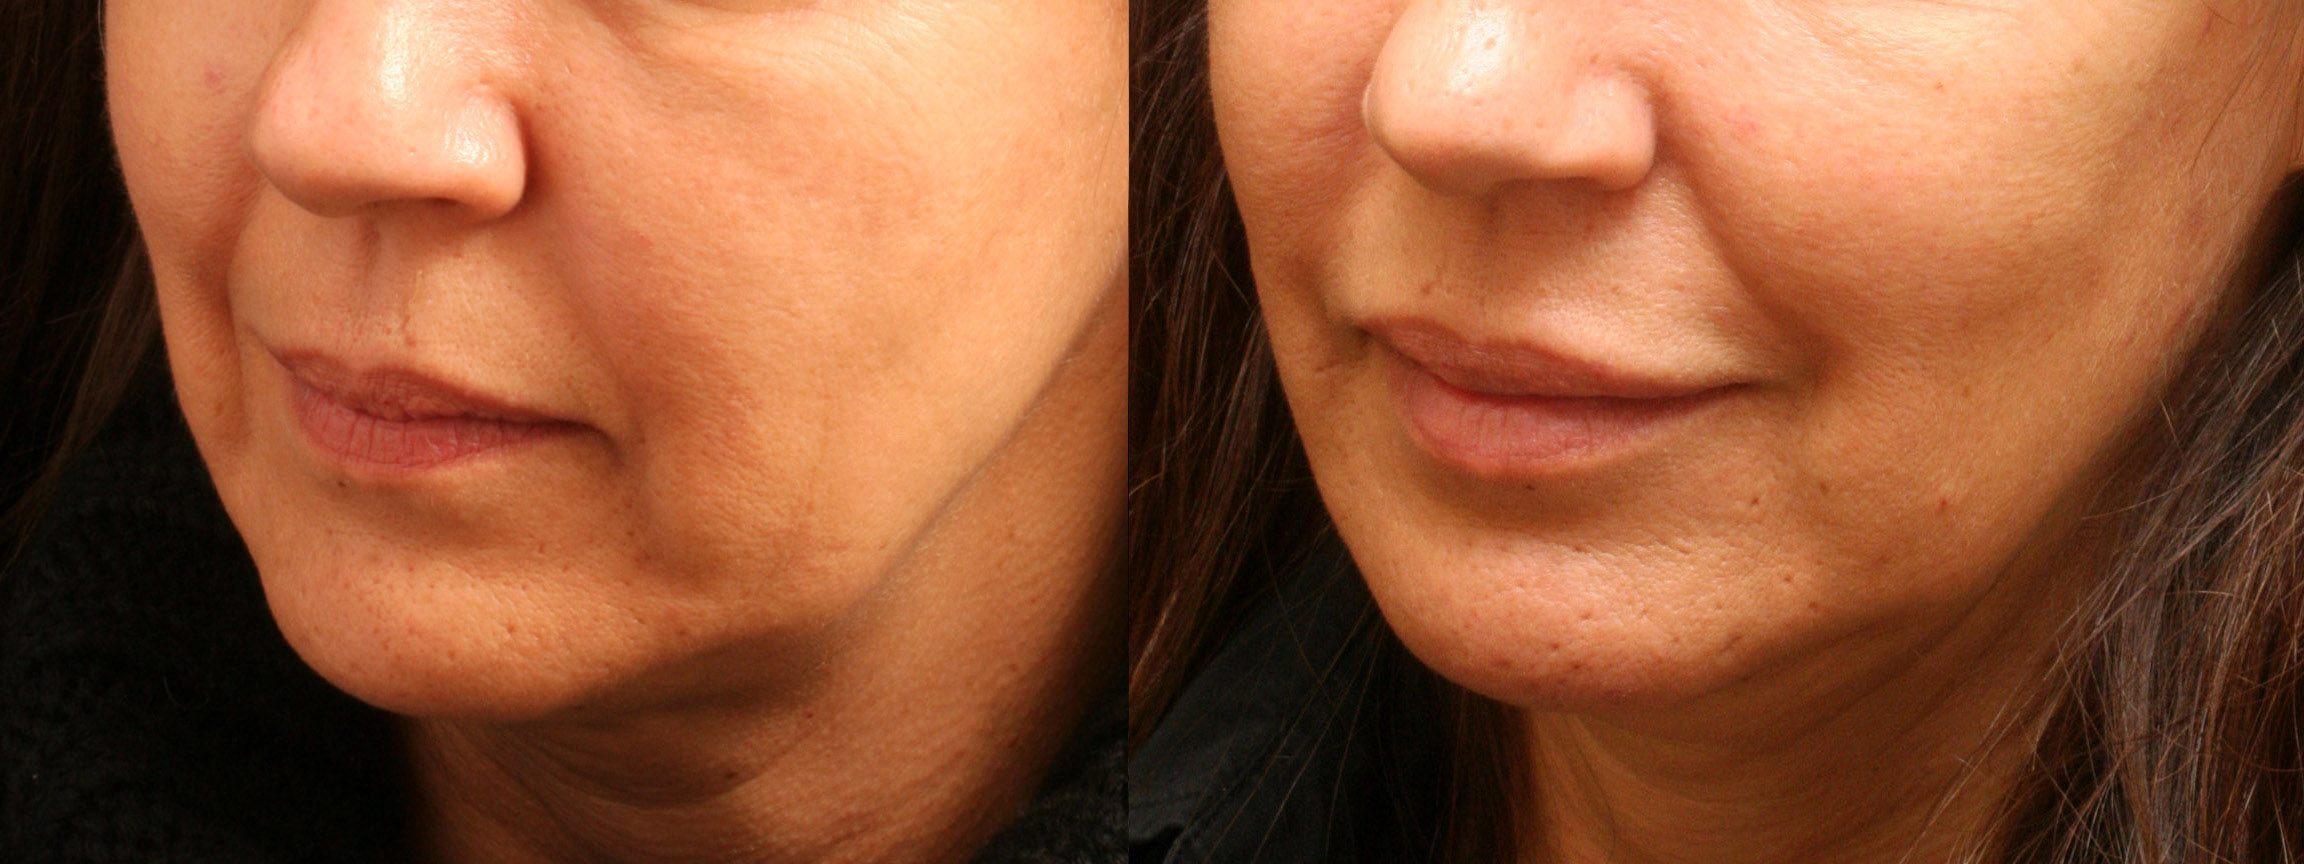 Radiesse, Juvederm, and Artefill